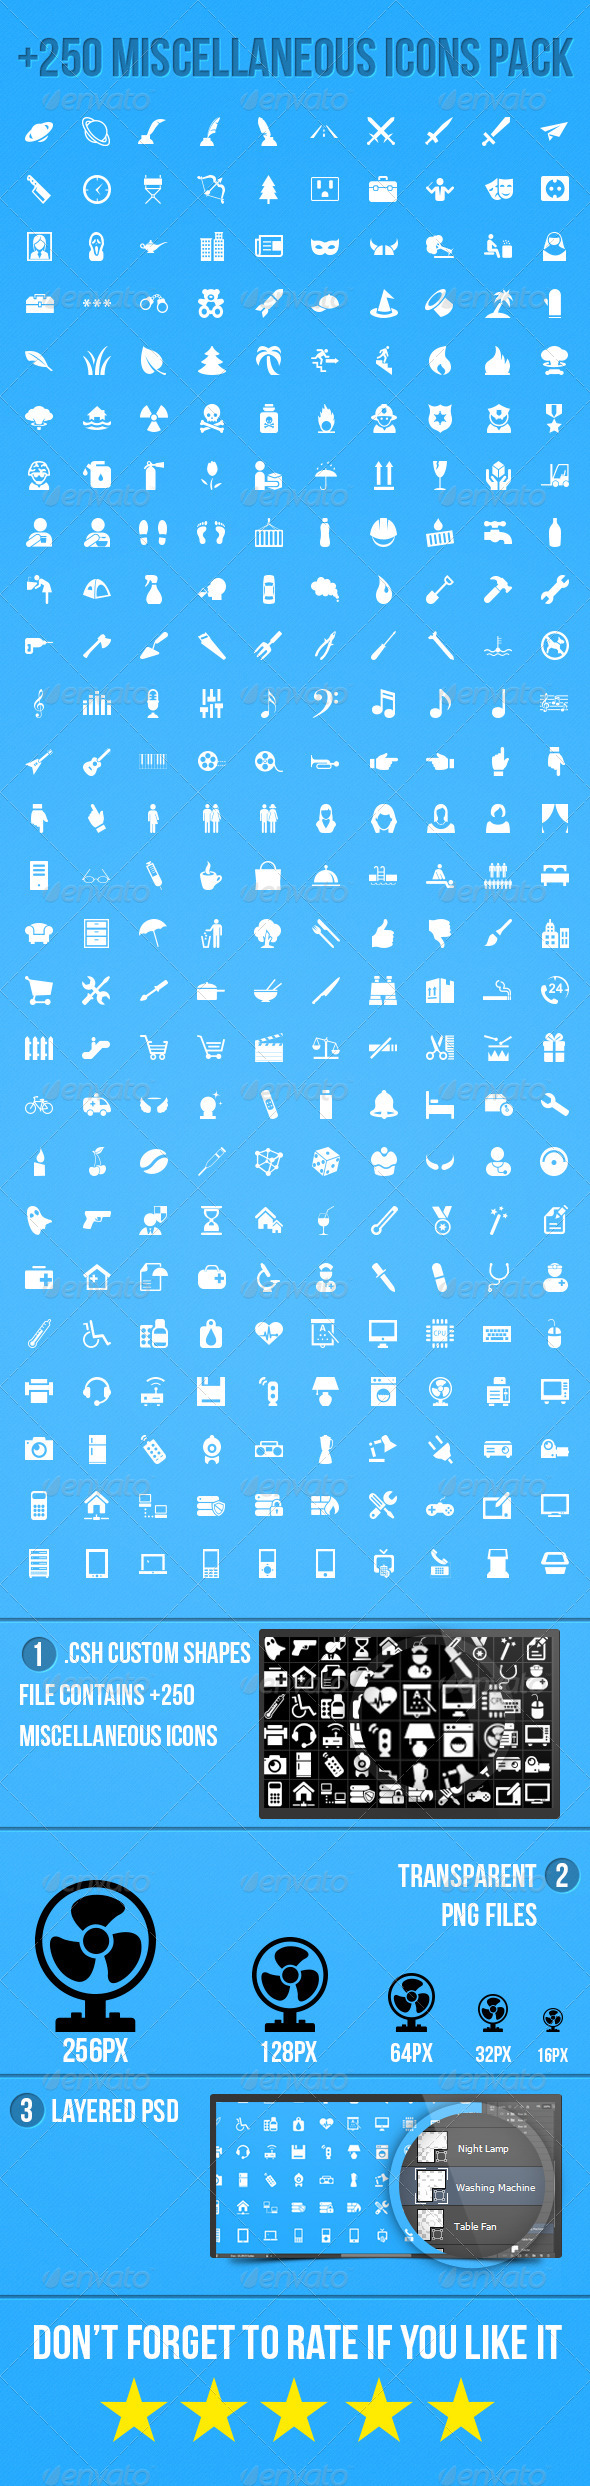 GraphicRiver Miscellaneous Icons Pack 5786463